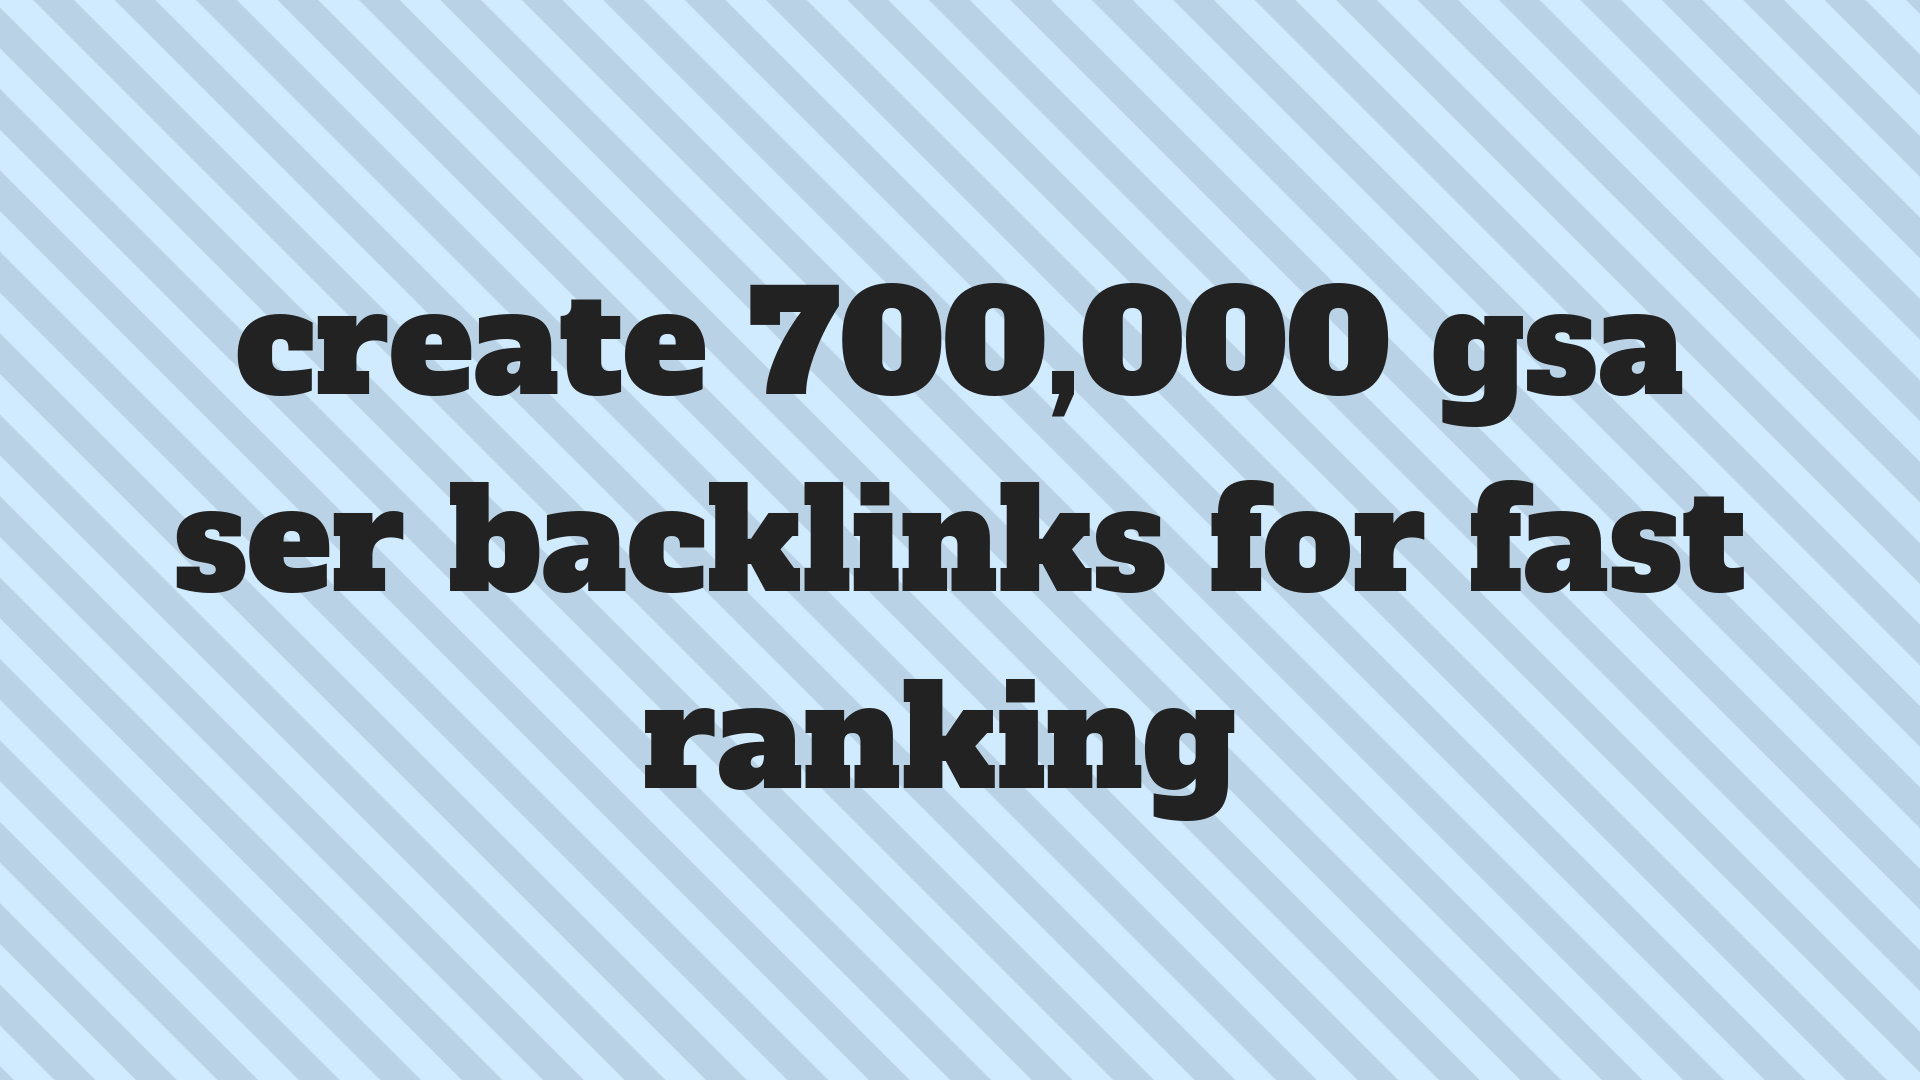 Create 700,000 gsa backlinks to be for a quick ranking.